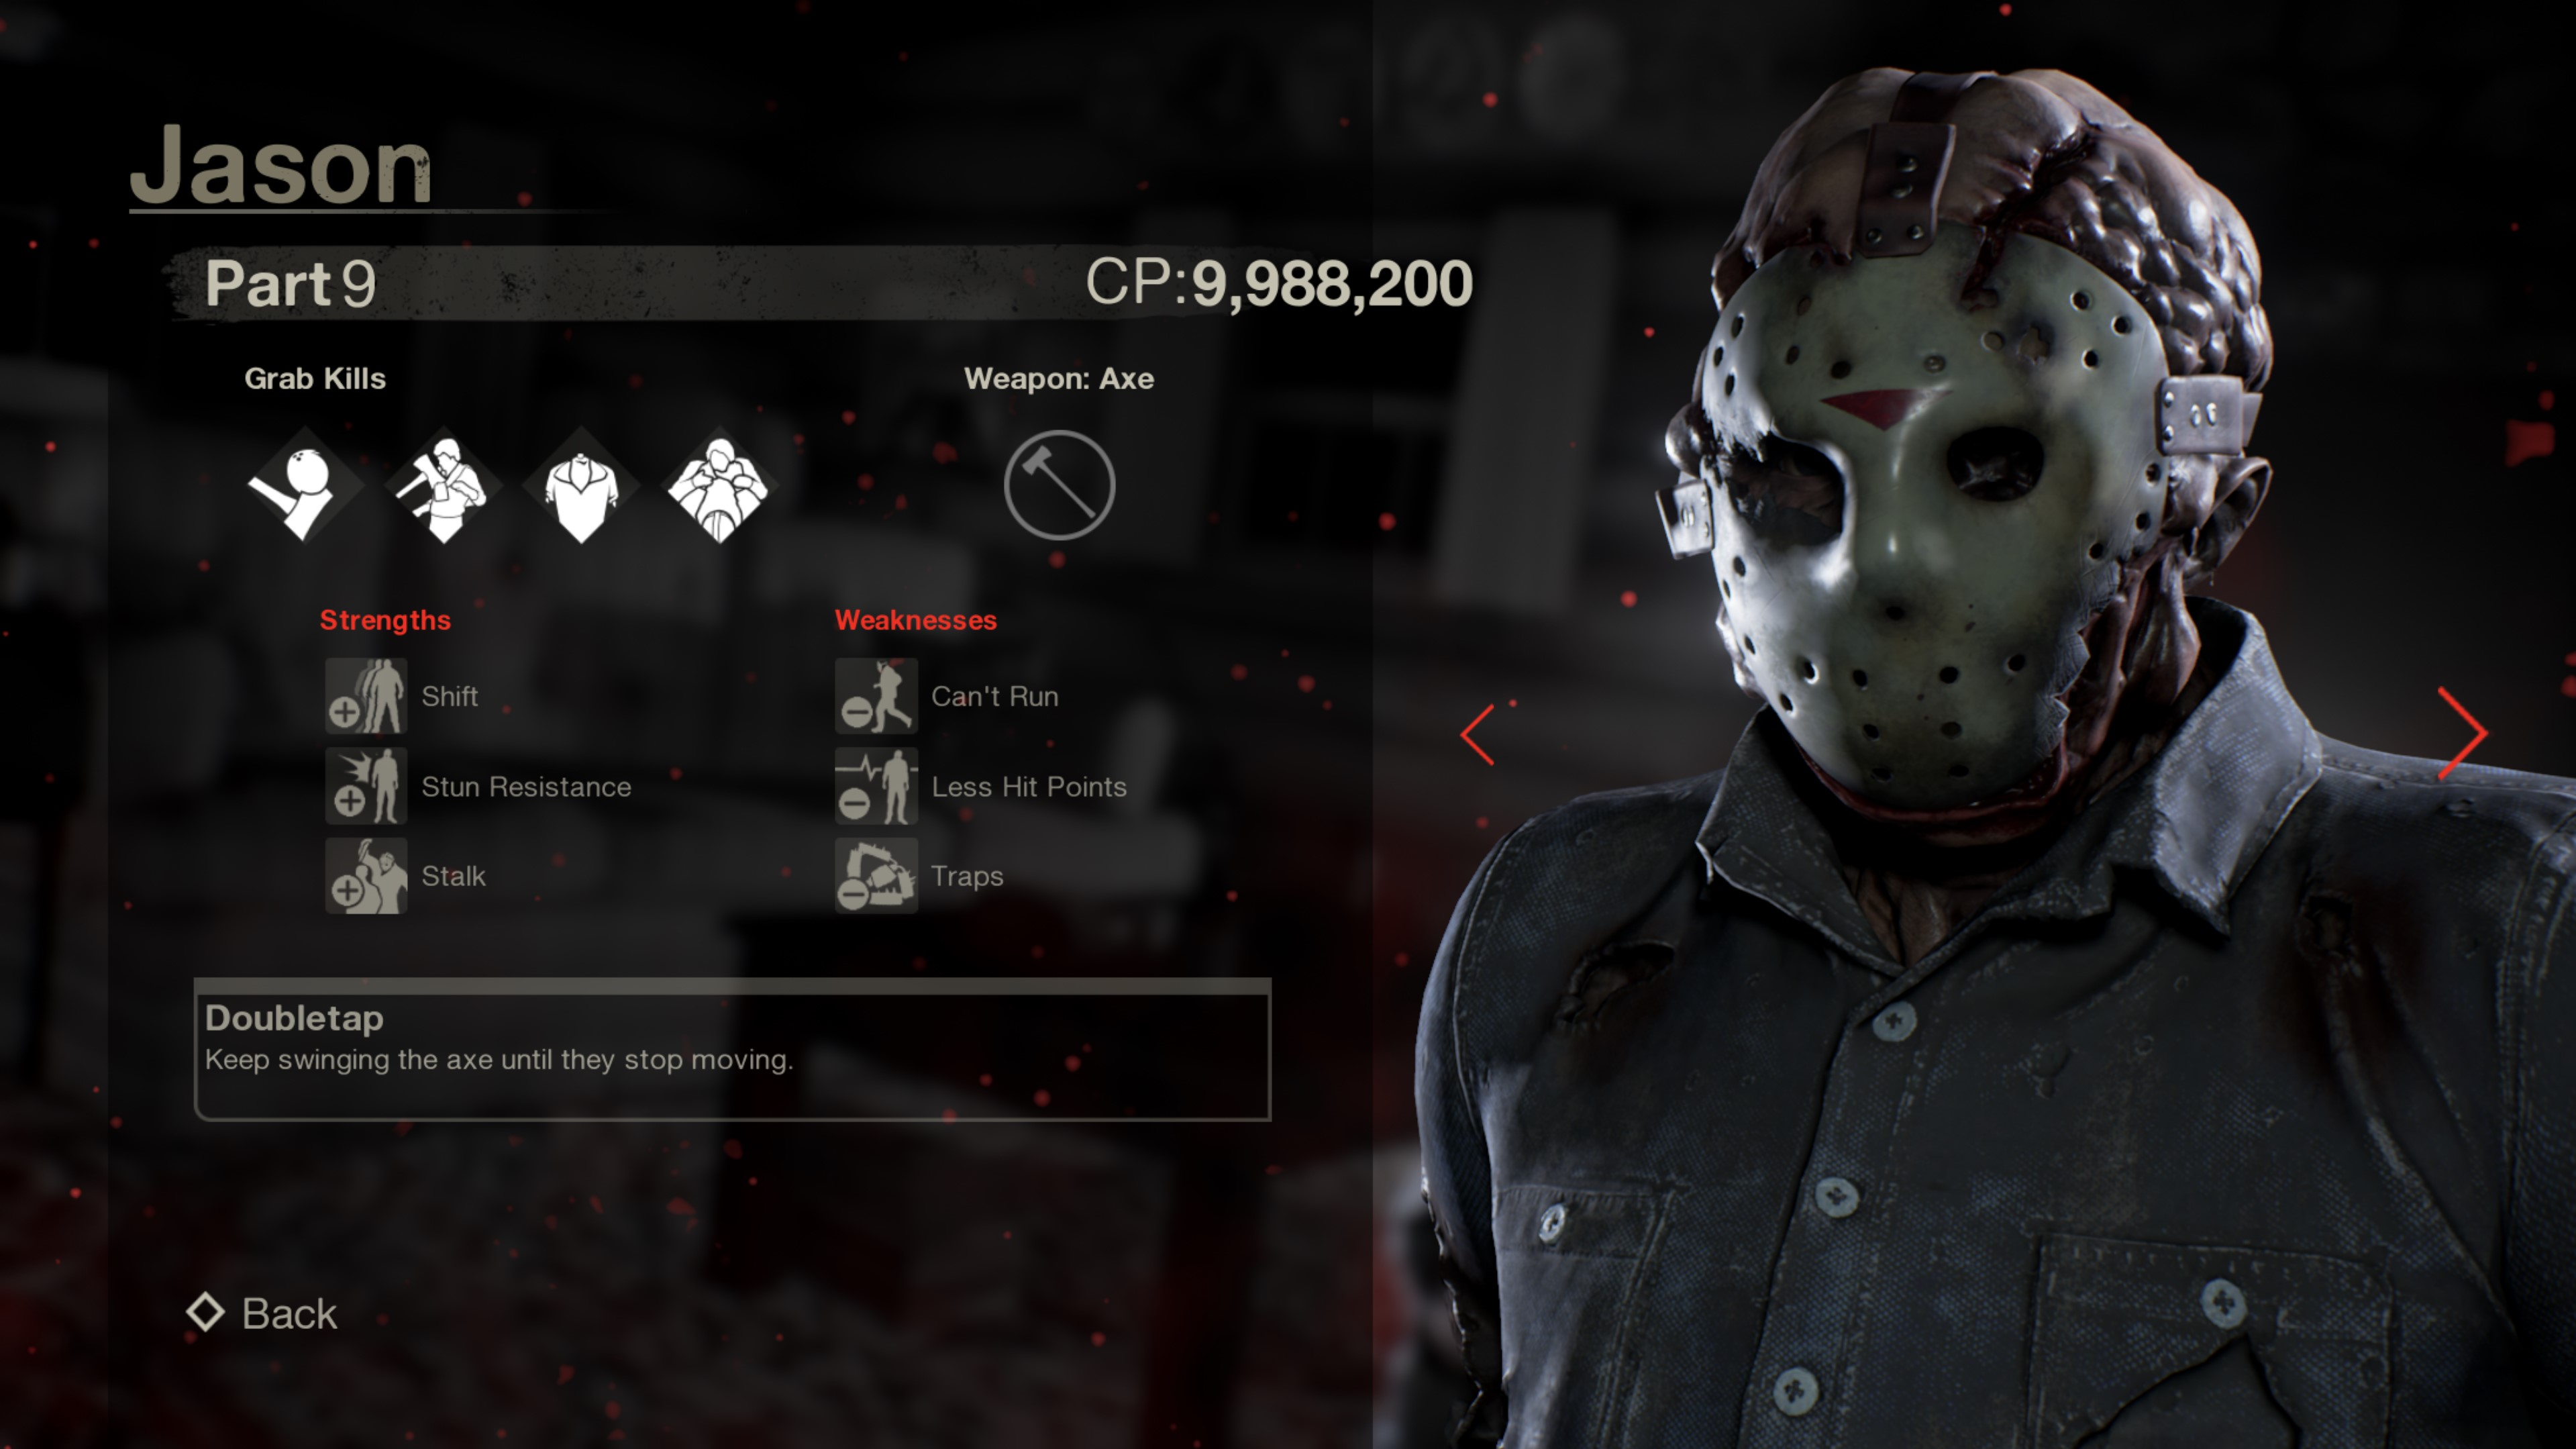 Jason from Friday the 13th part 9